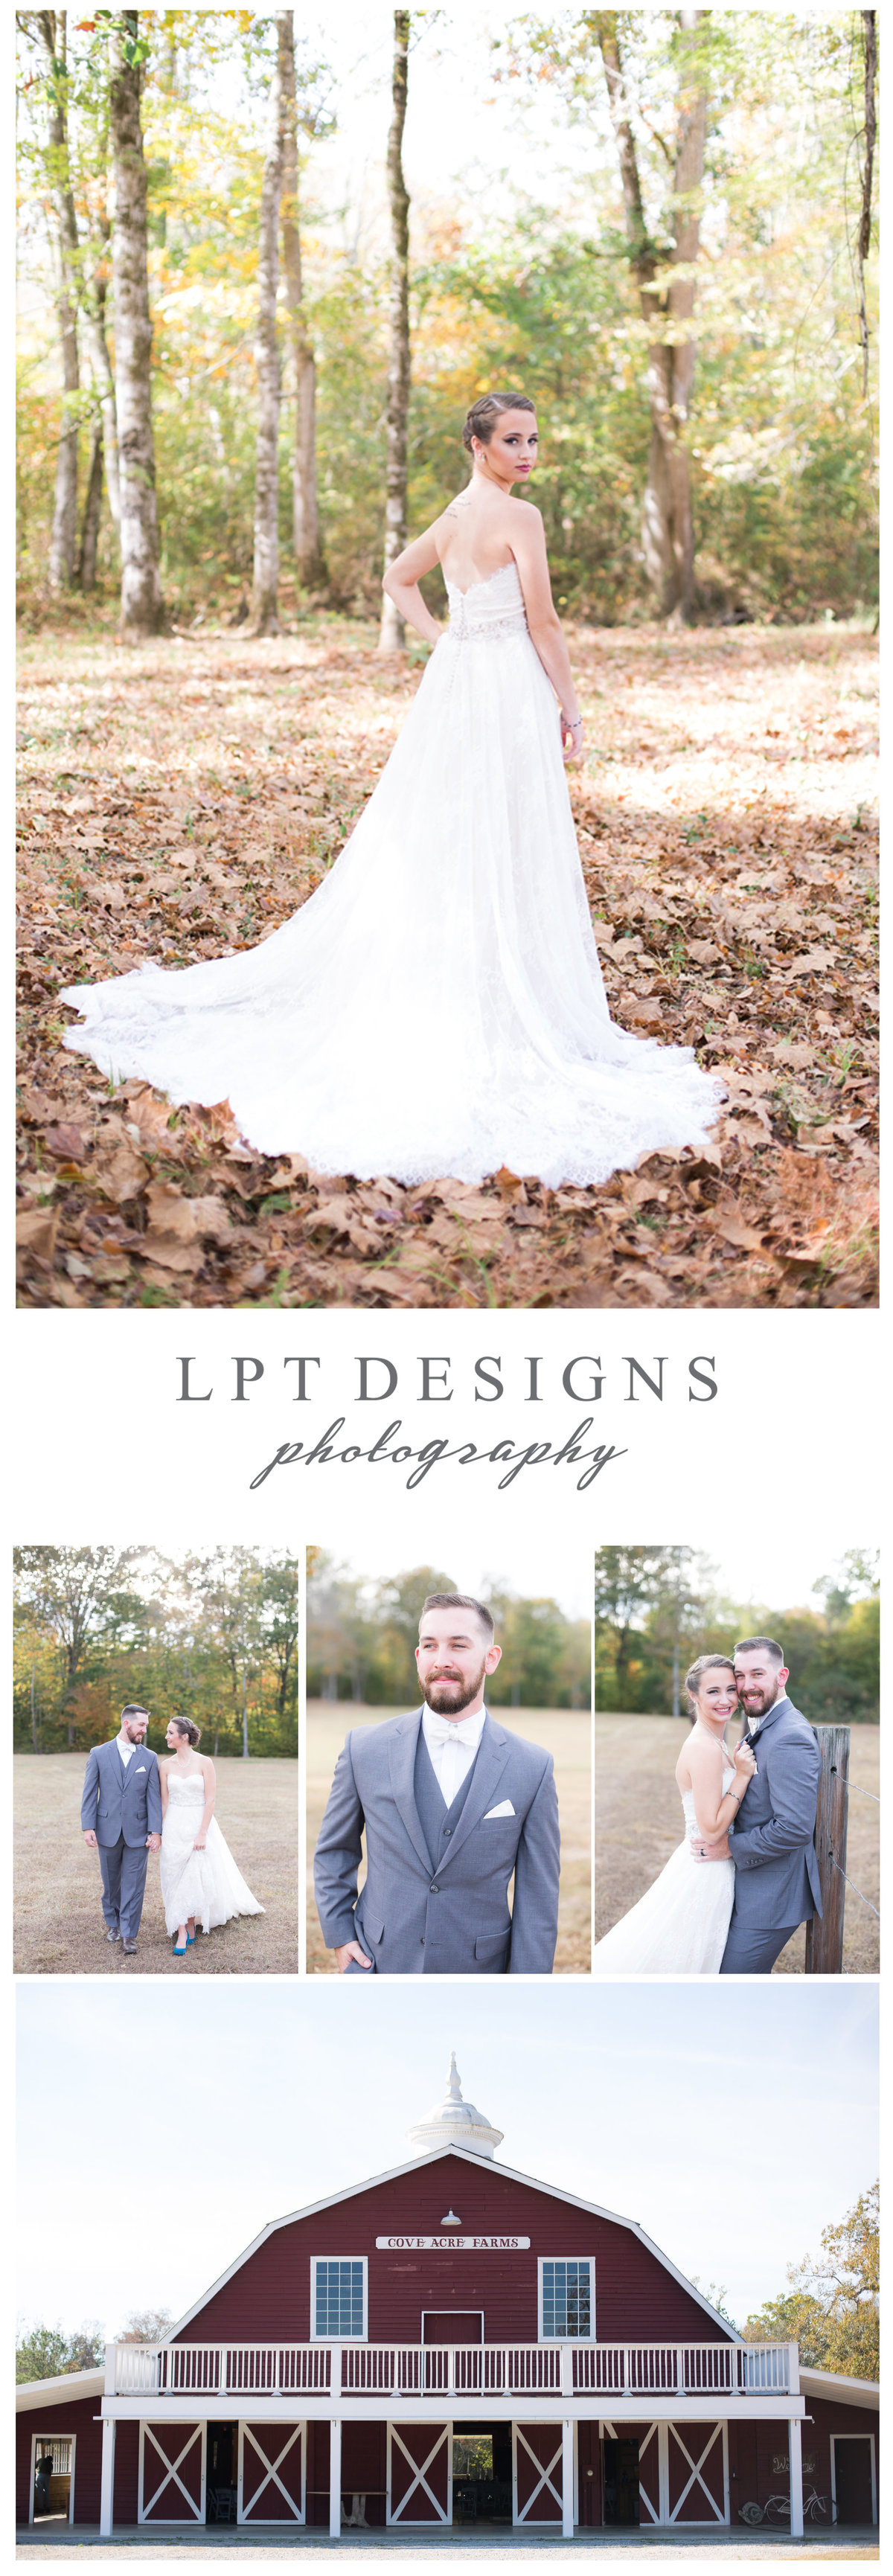 LPT Designs Photography Lydia Thrift Gadsden Alabama Fine Art Wedding Photographer ST 1